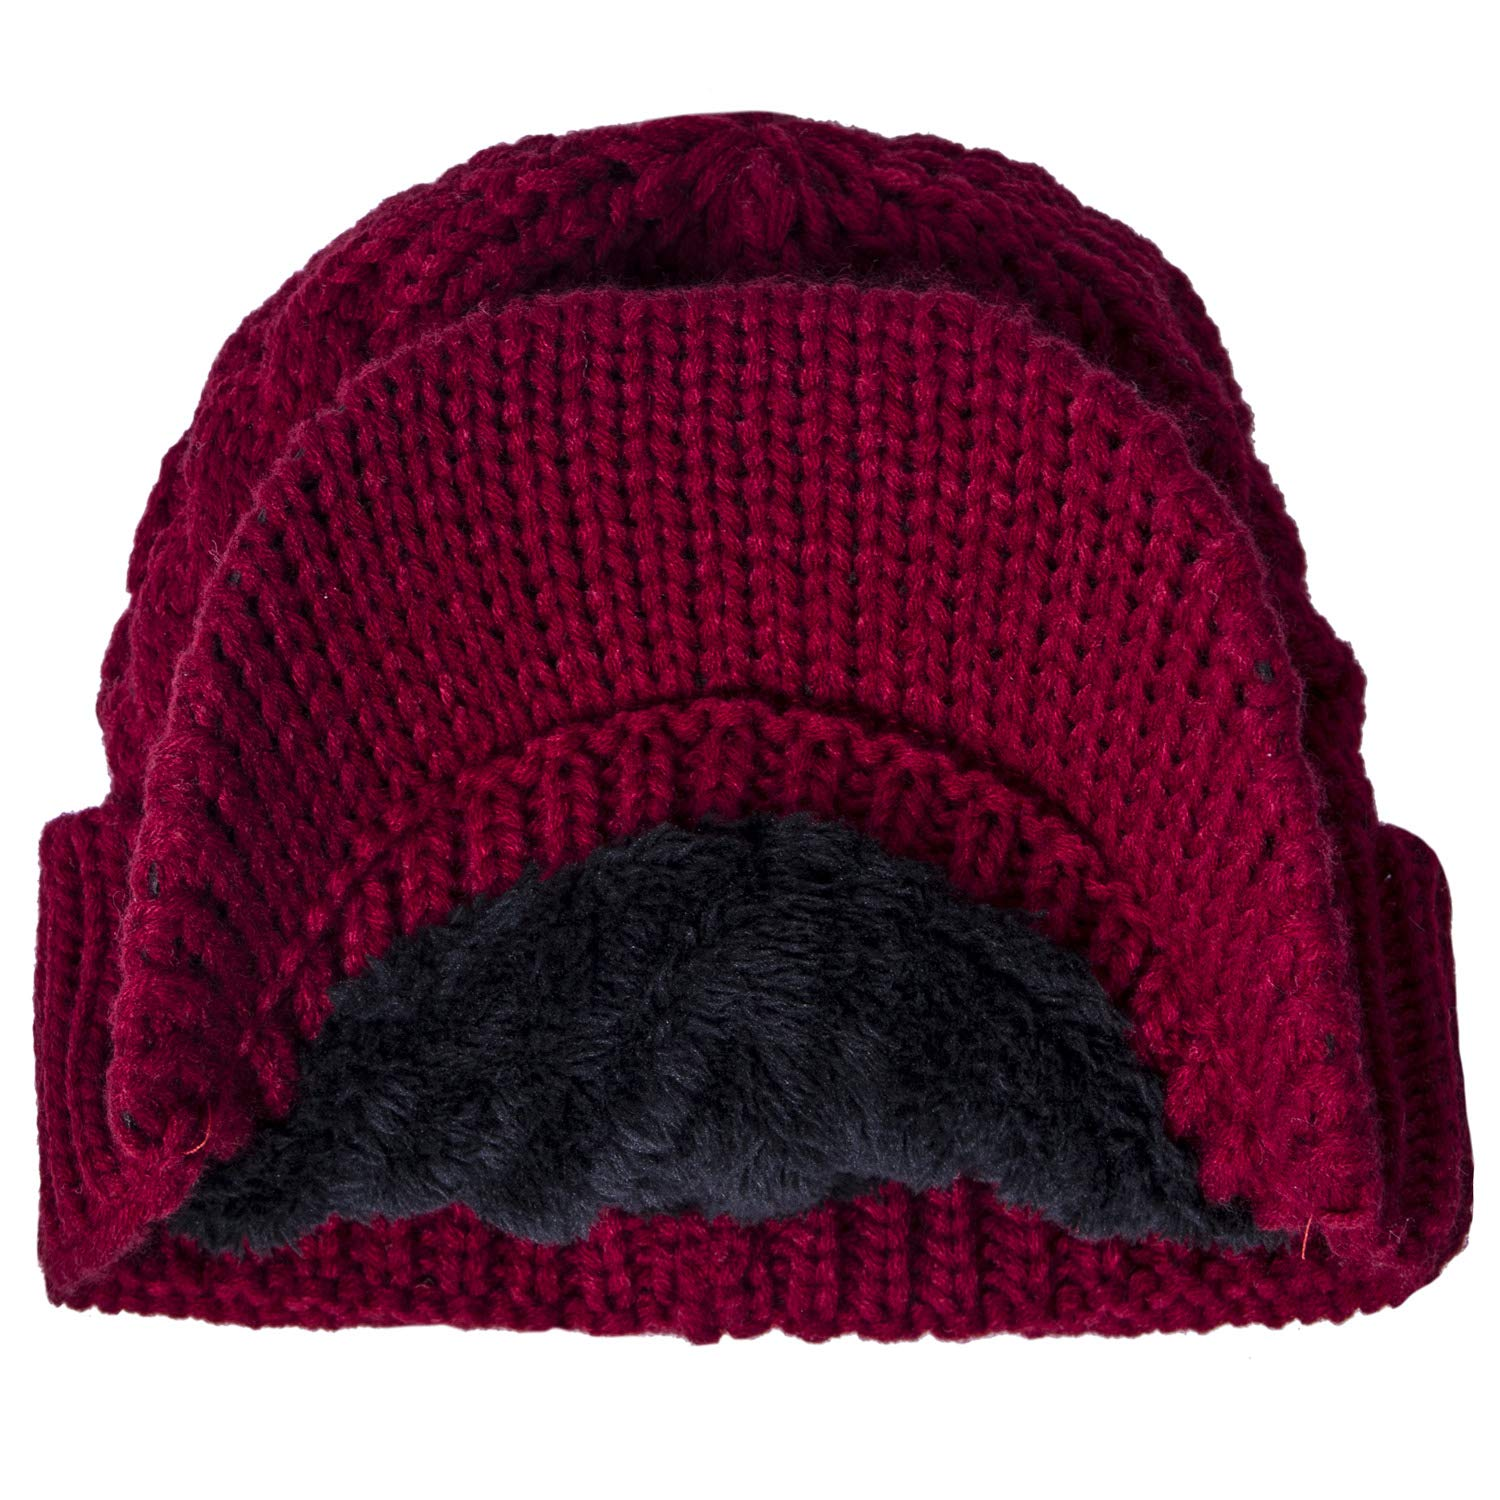 Sierry Womens Cable Knit Hat db6deb561140